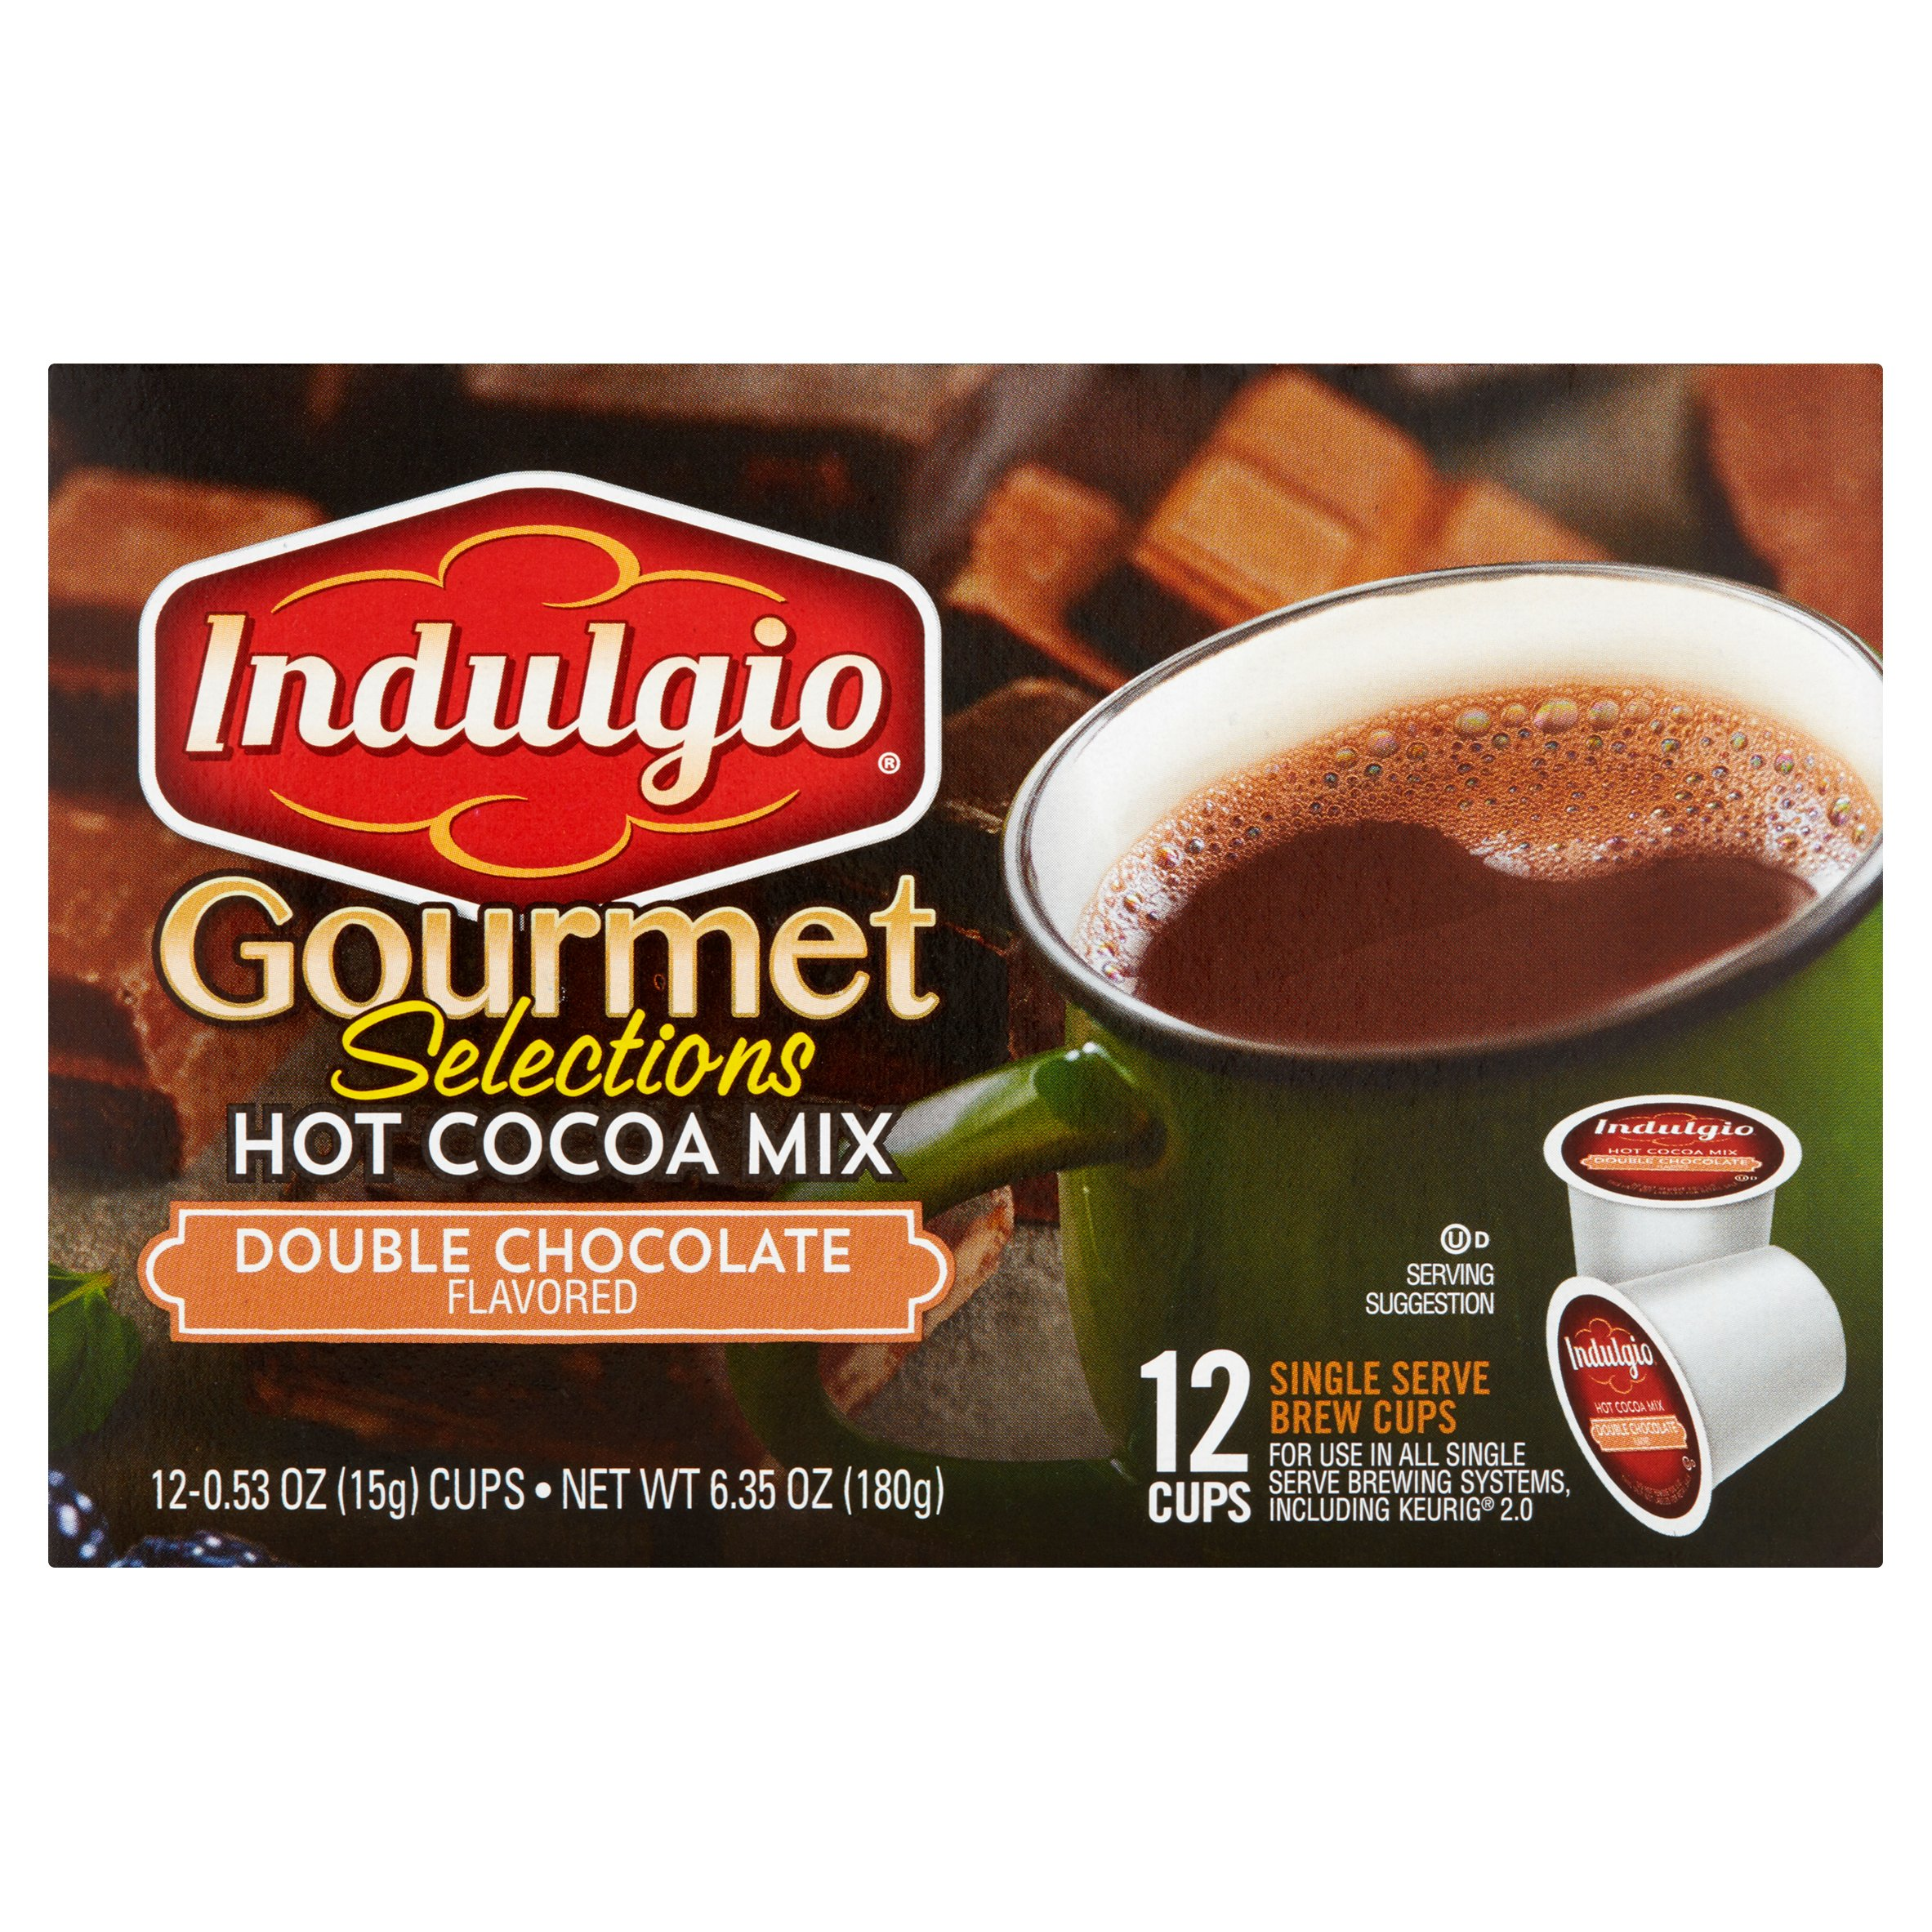 Indulgio Gourmet Selections Double Chocolate Flavored Hot Cocoa Mix, 0.53 oz, 12 count